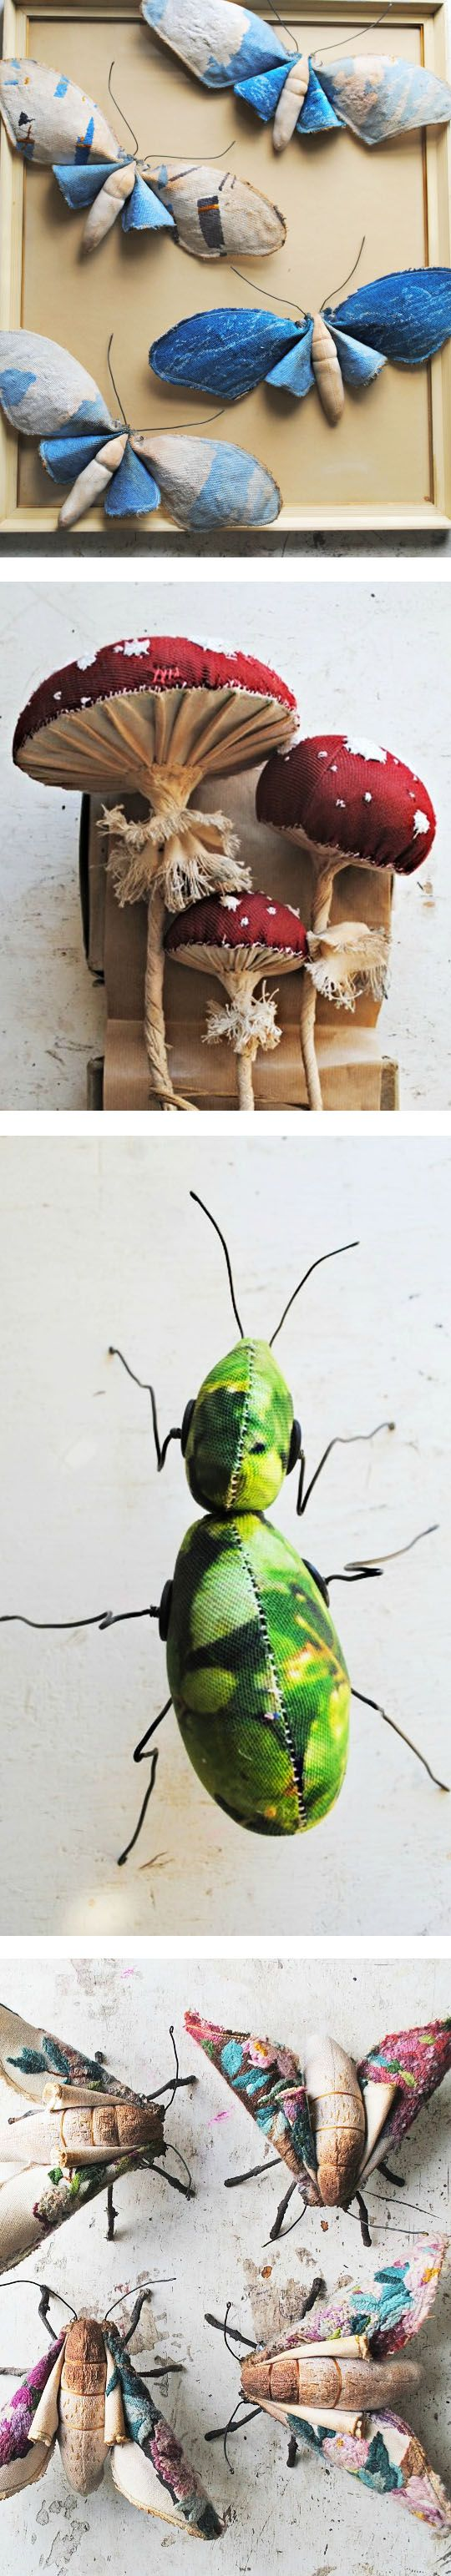 insects etc ~ fabric art